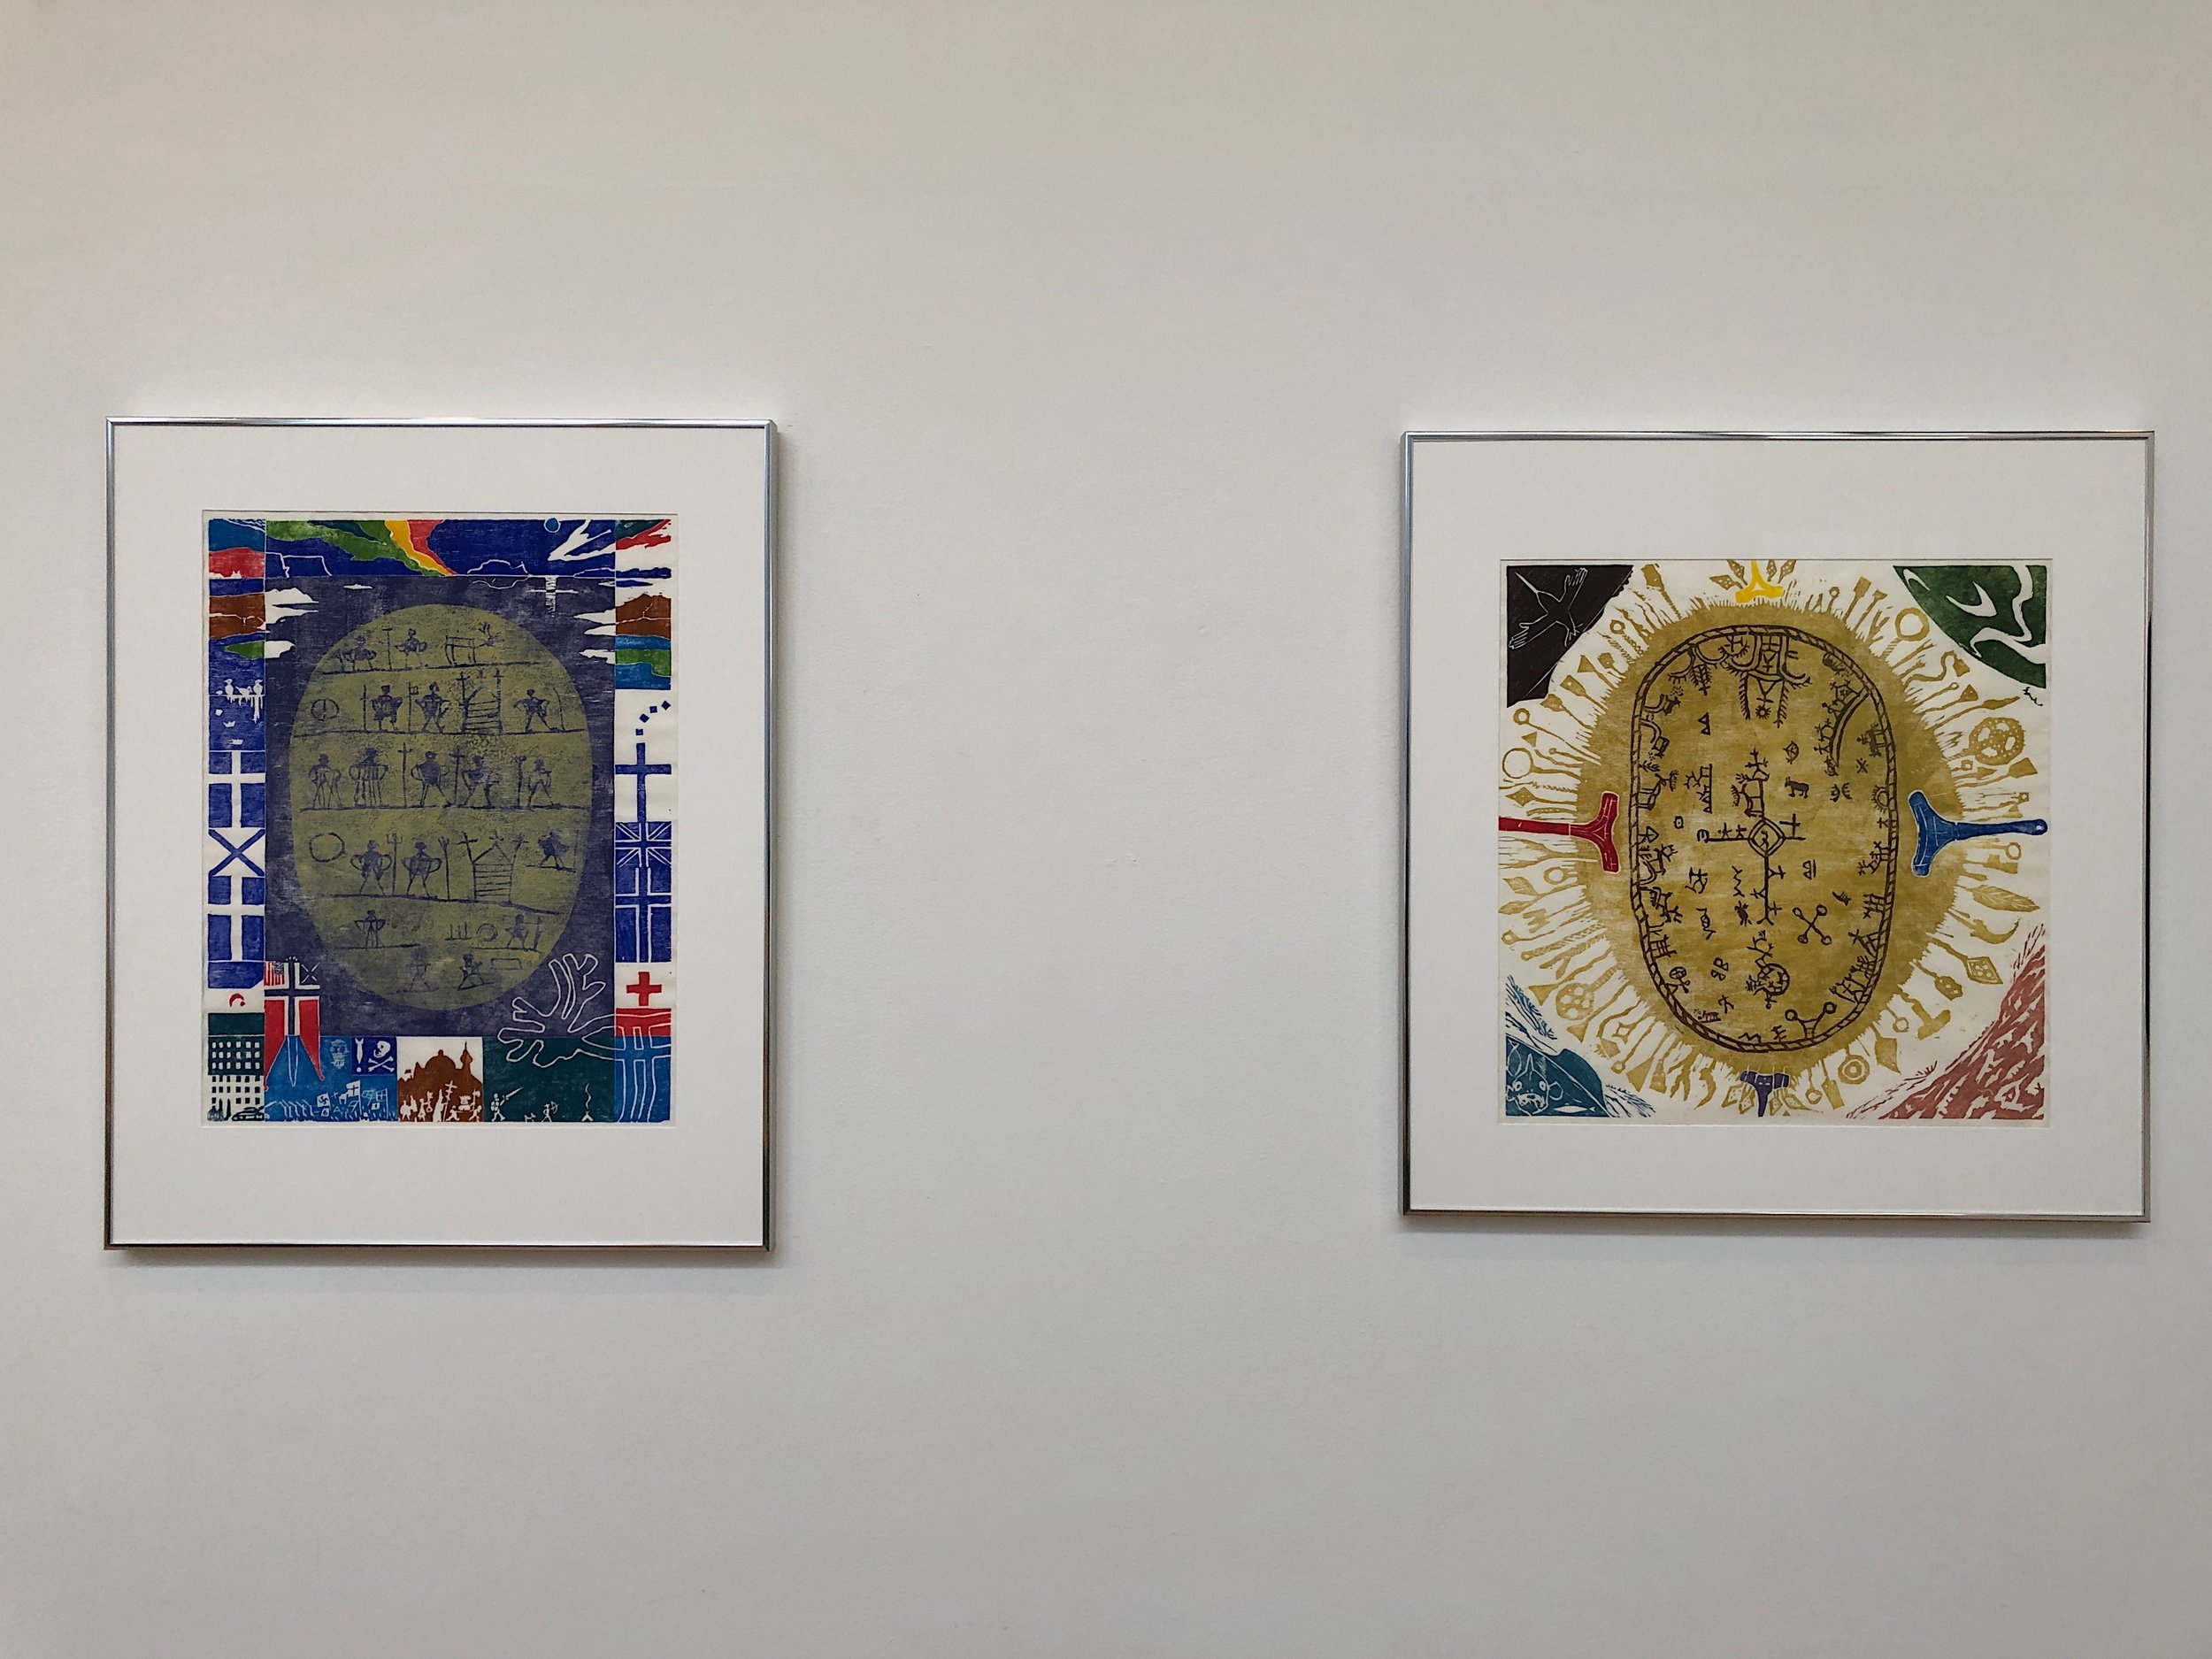 To the right; Ajamoste aajmoste/Nuppi Ilmmis nubbái (1995). Woodcut, monotype on paper. To the left; Geafes ráfi (1995). Woodcut, monotype on paper. Both by Hans Ragnar Mathisen. Photo: Hilde Sørstrøm